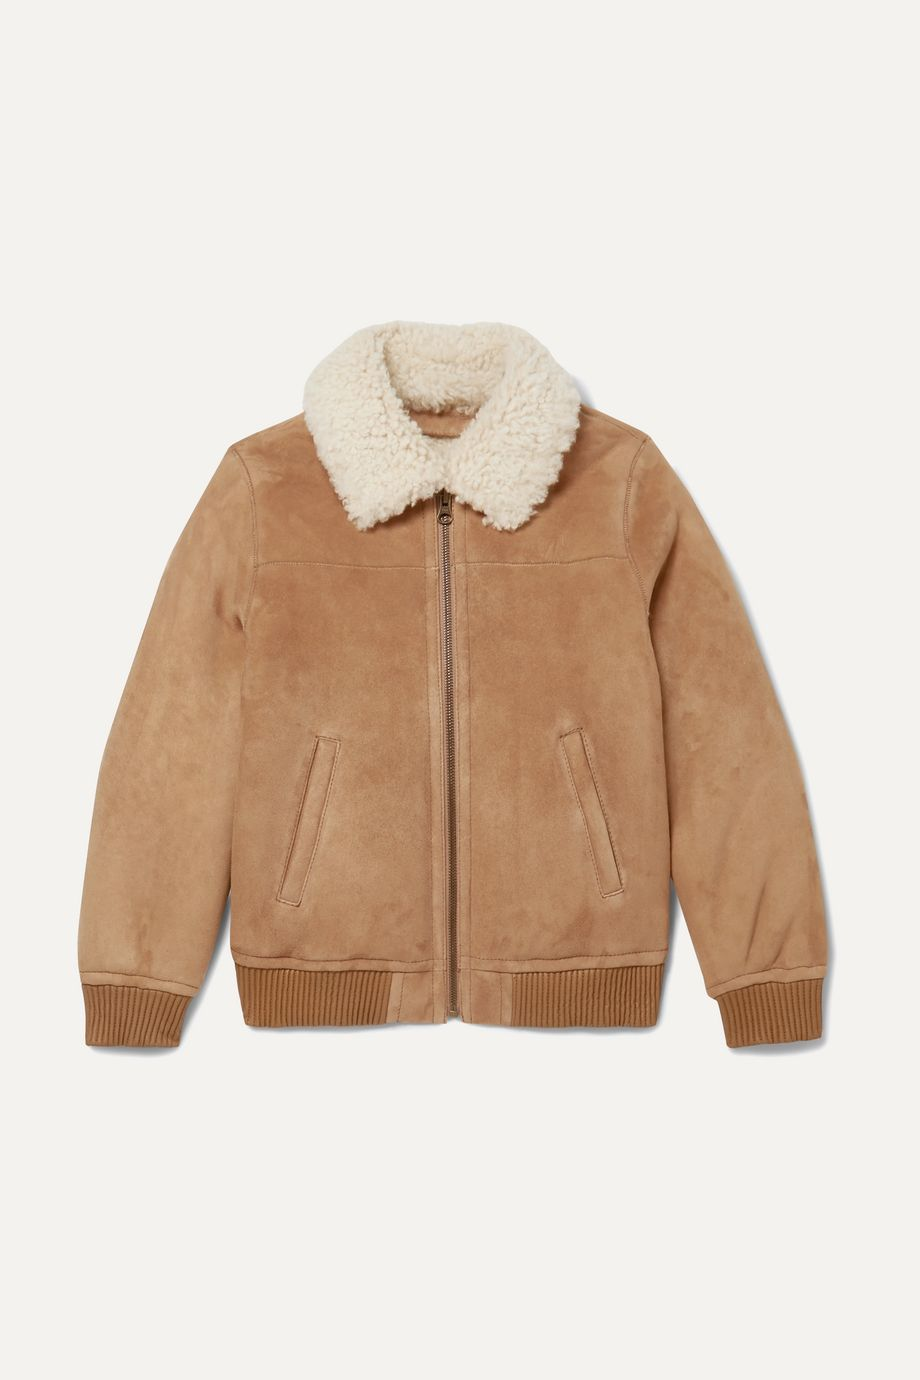 Yves Salomon Kids Ages 8-10 shearling-trimmed suede bomber jacket